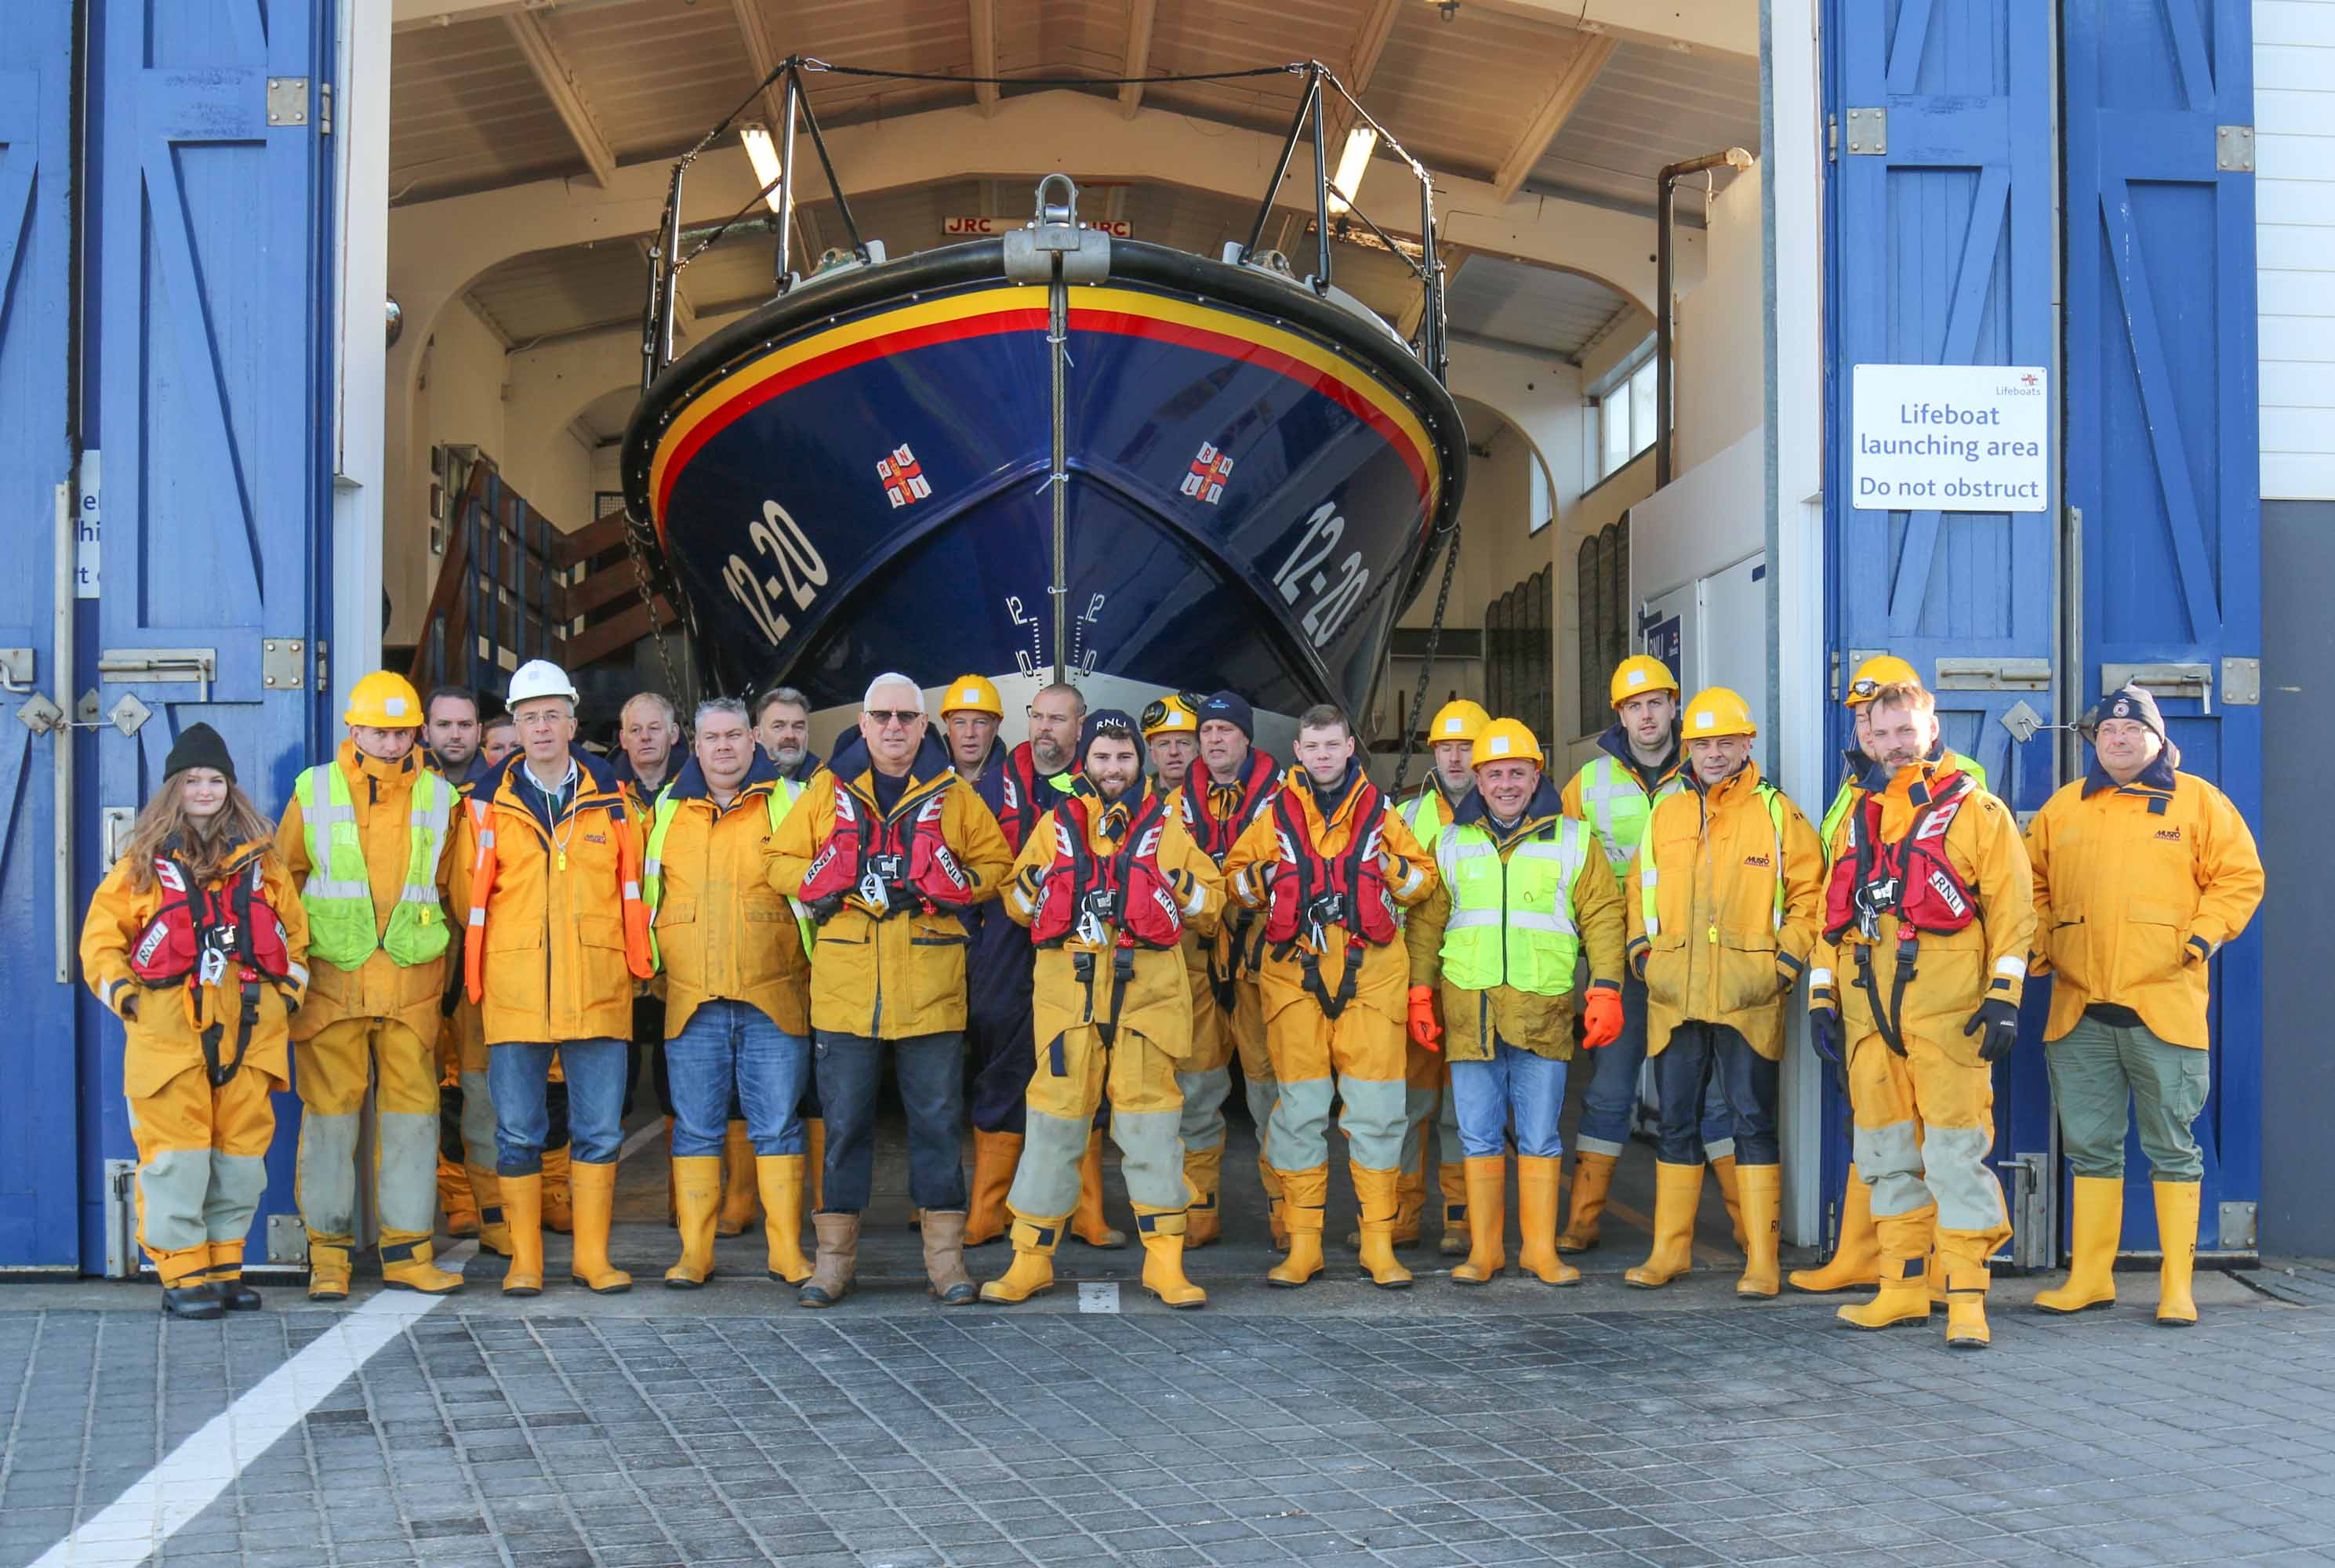 Alex (centre) with the lifeboat crew